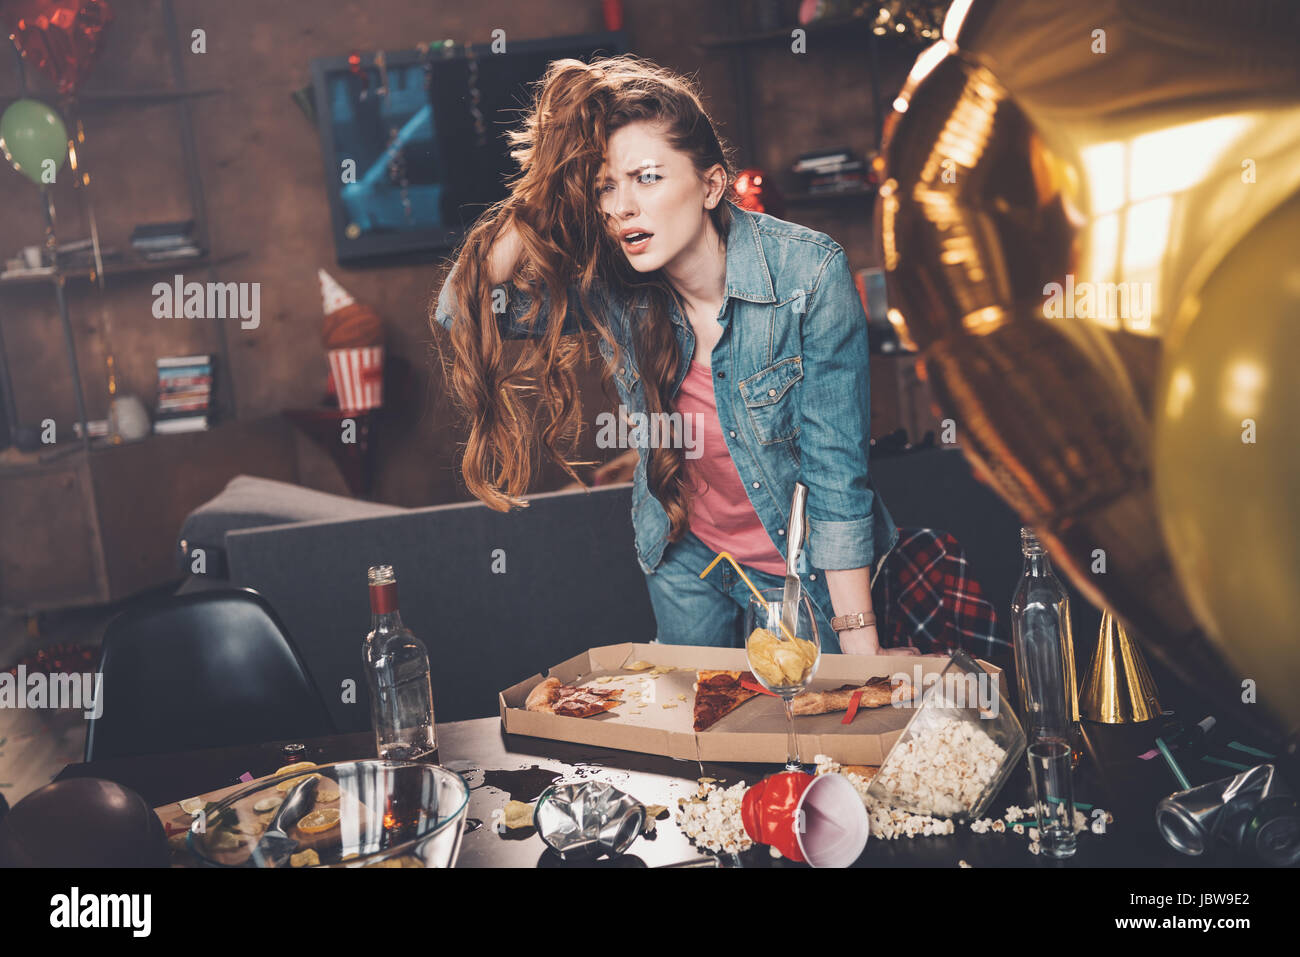 Depressed young woman with hangover leaning at messy table after party Stock Photo